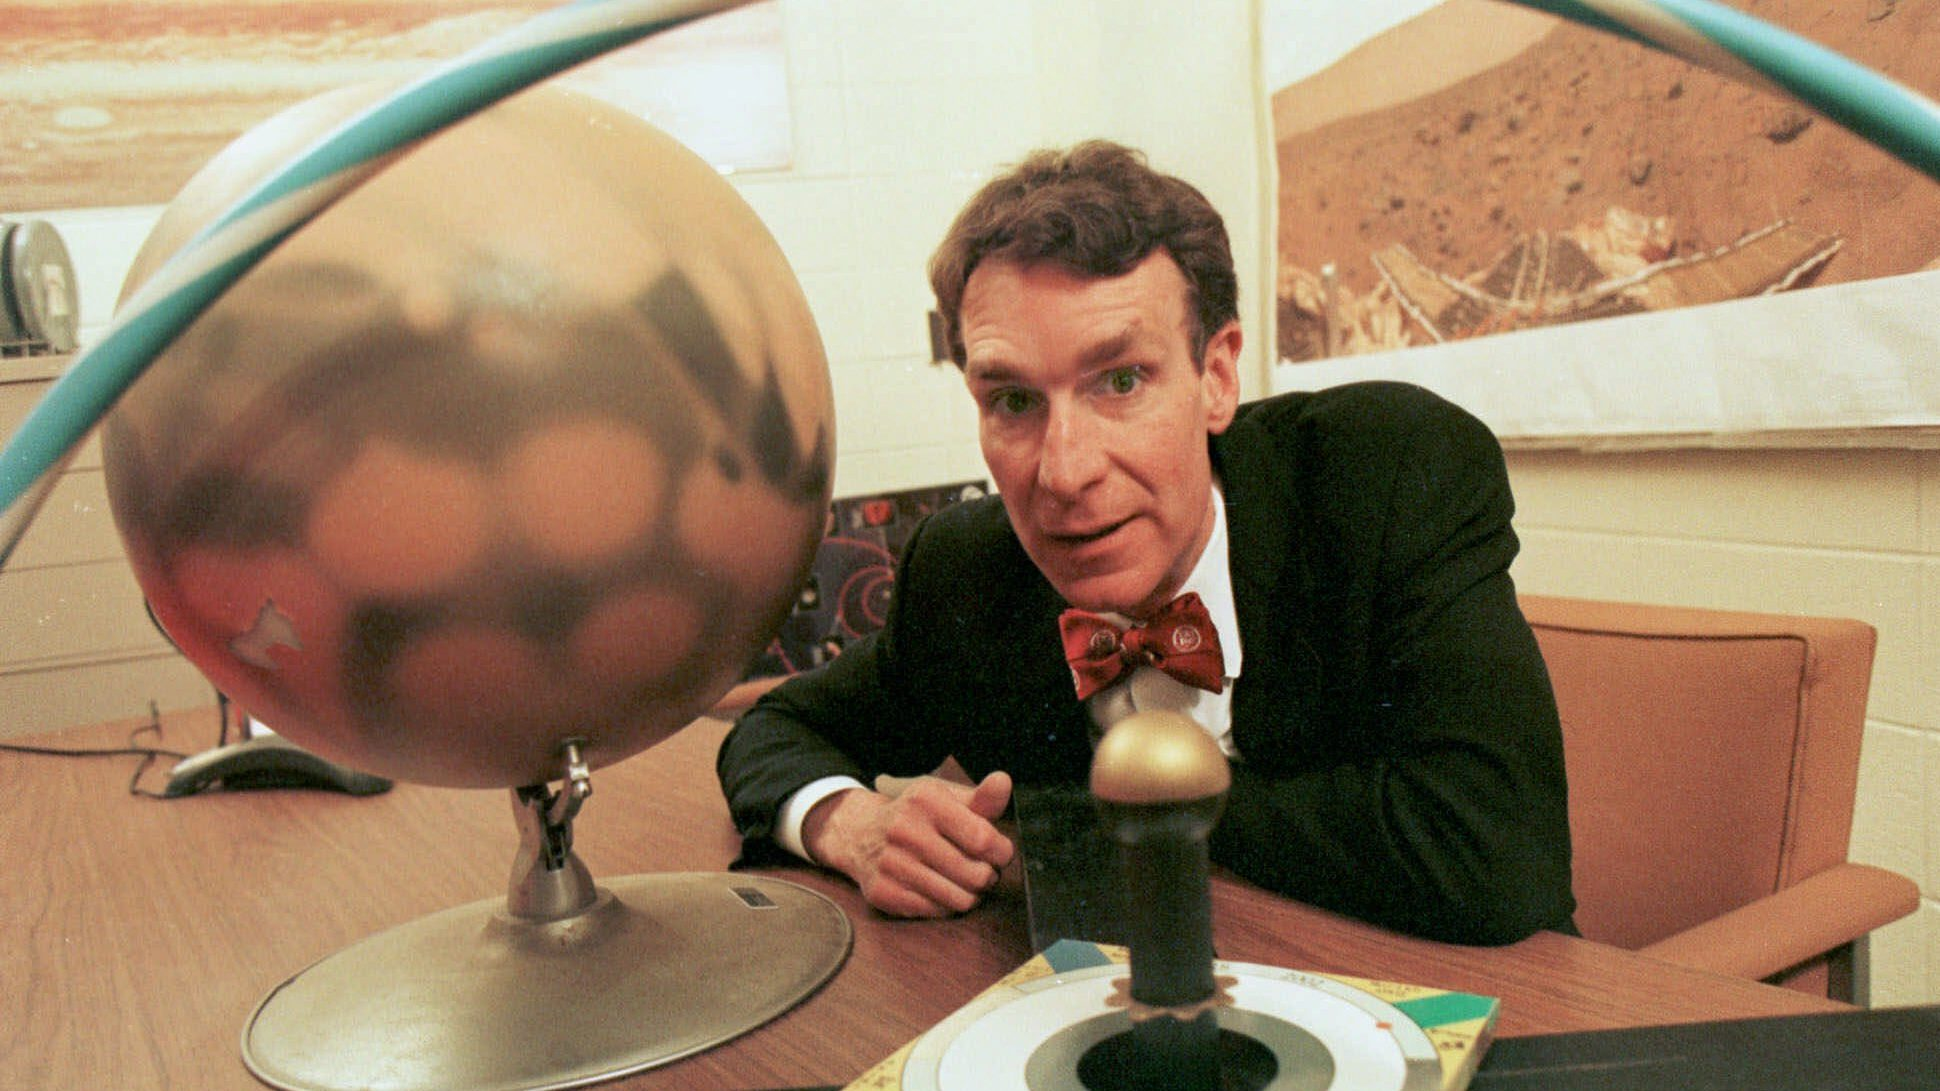 Bill Nye the Science Guy holds up after 26 years